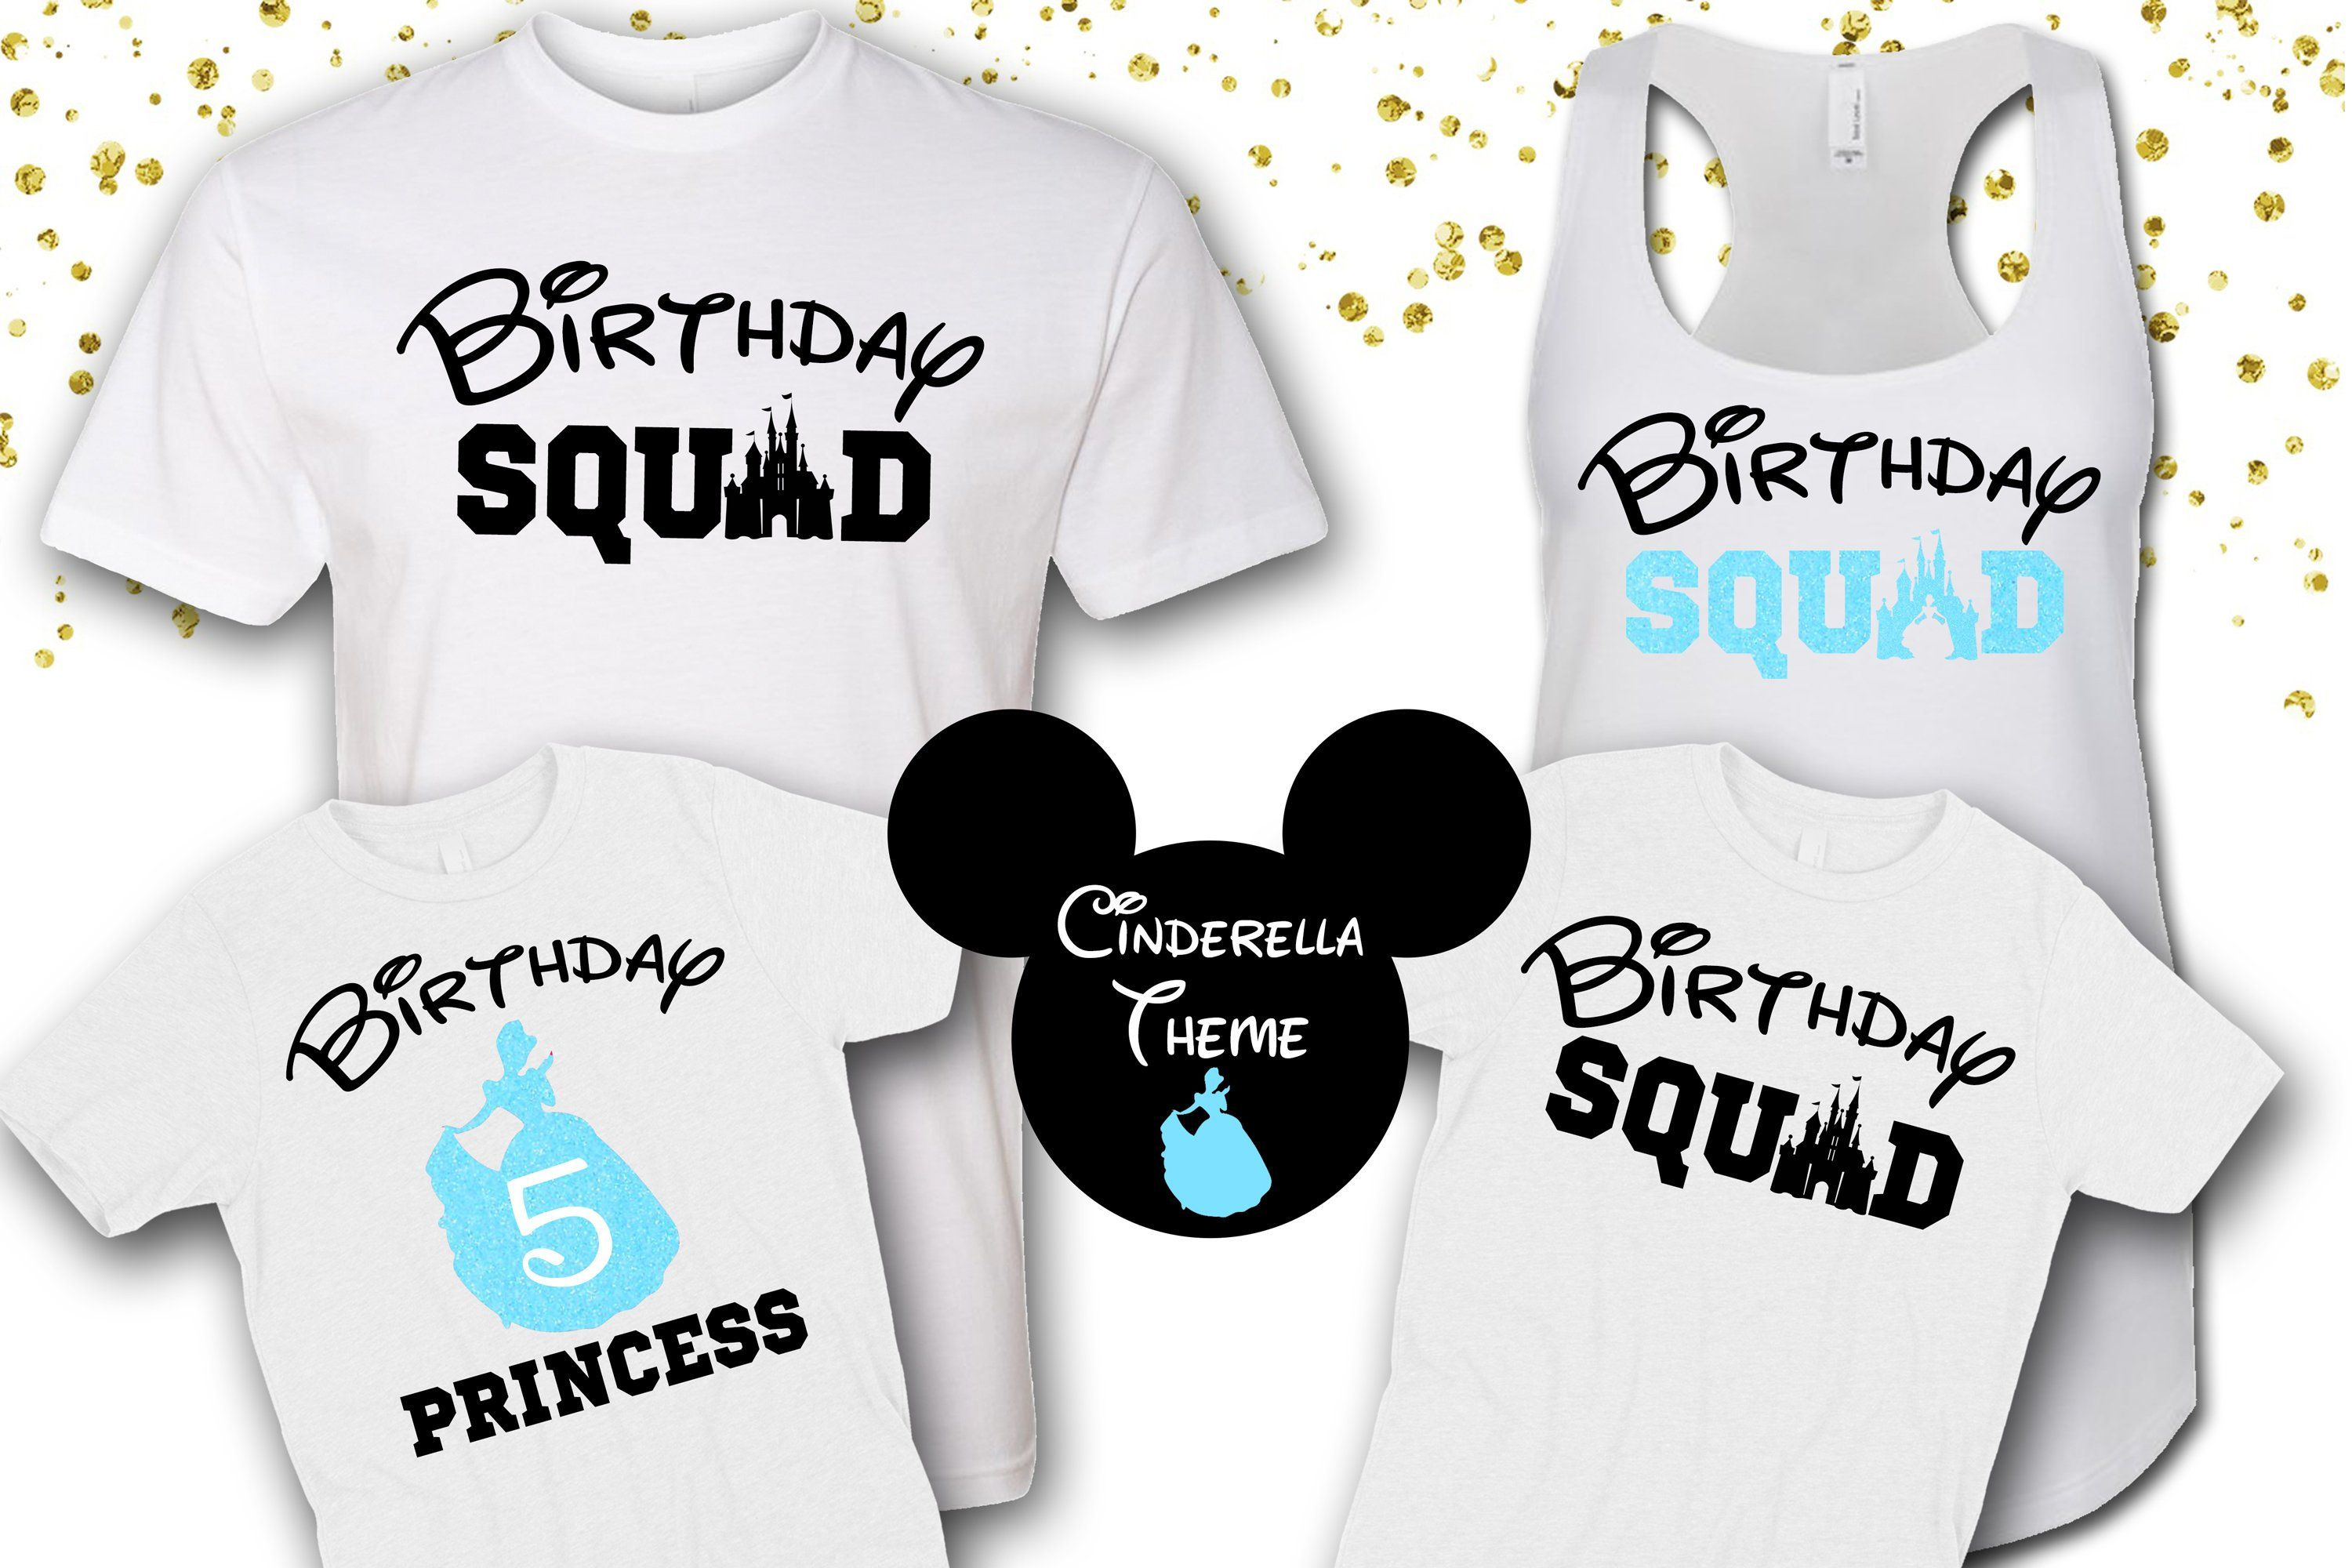 Birthday Squad ShirtsDisney SquadCinderella ShirtsCinderella ThemeDisney Family Shirts By OhMyPoshGifts On Etsy